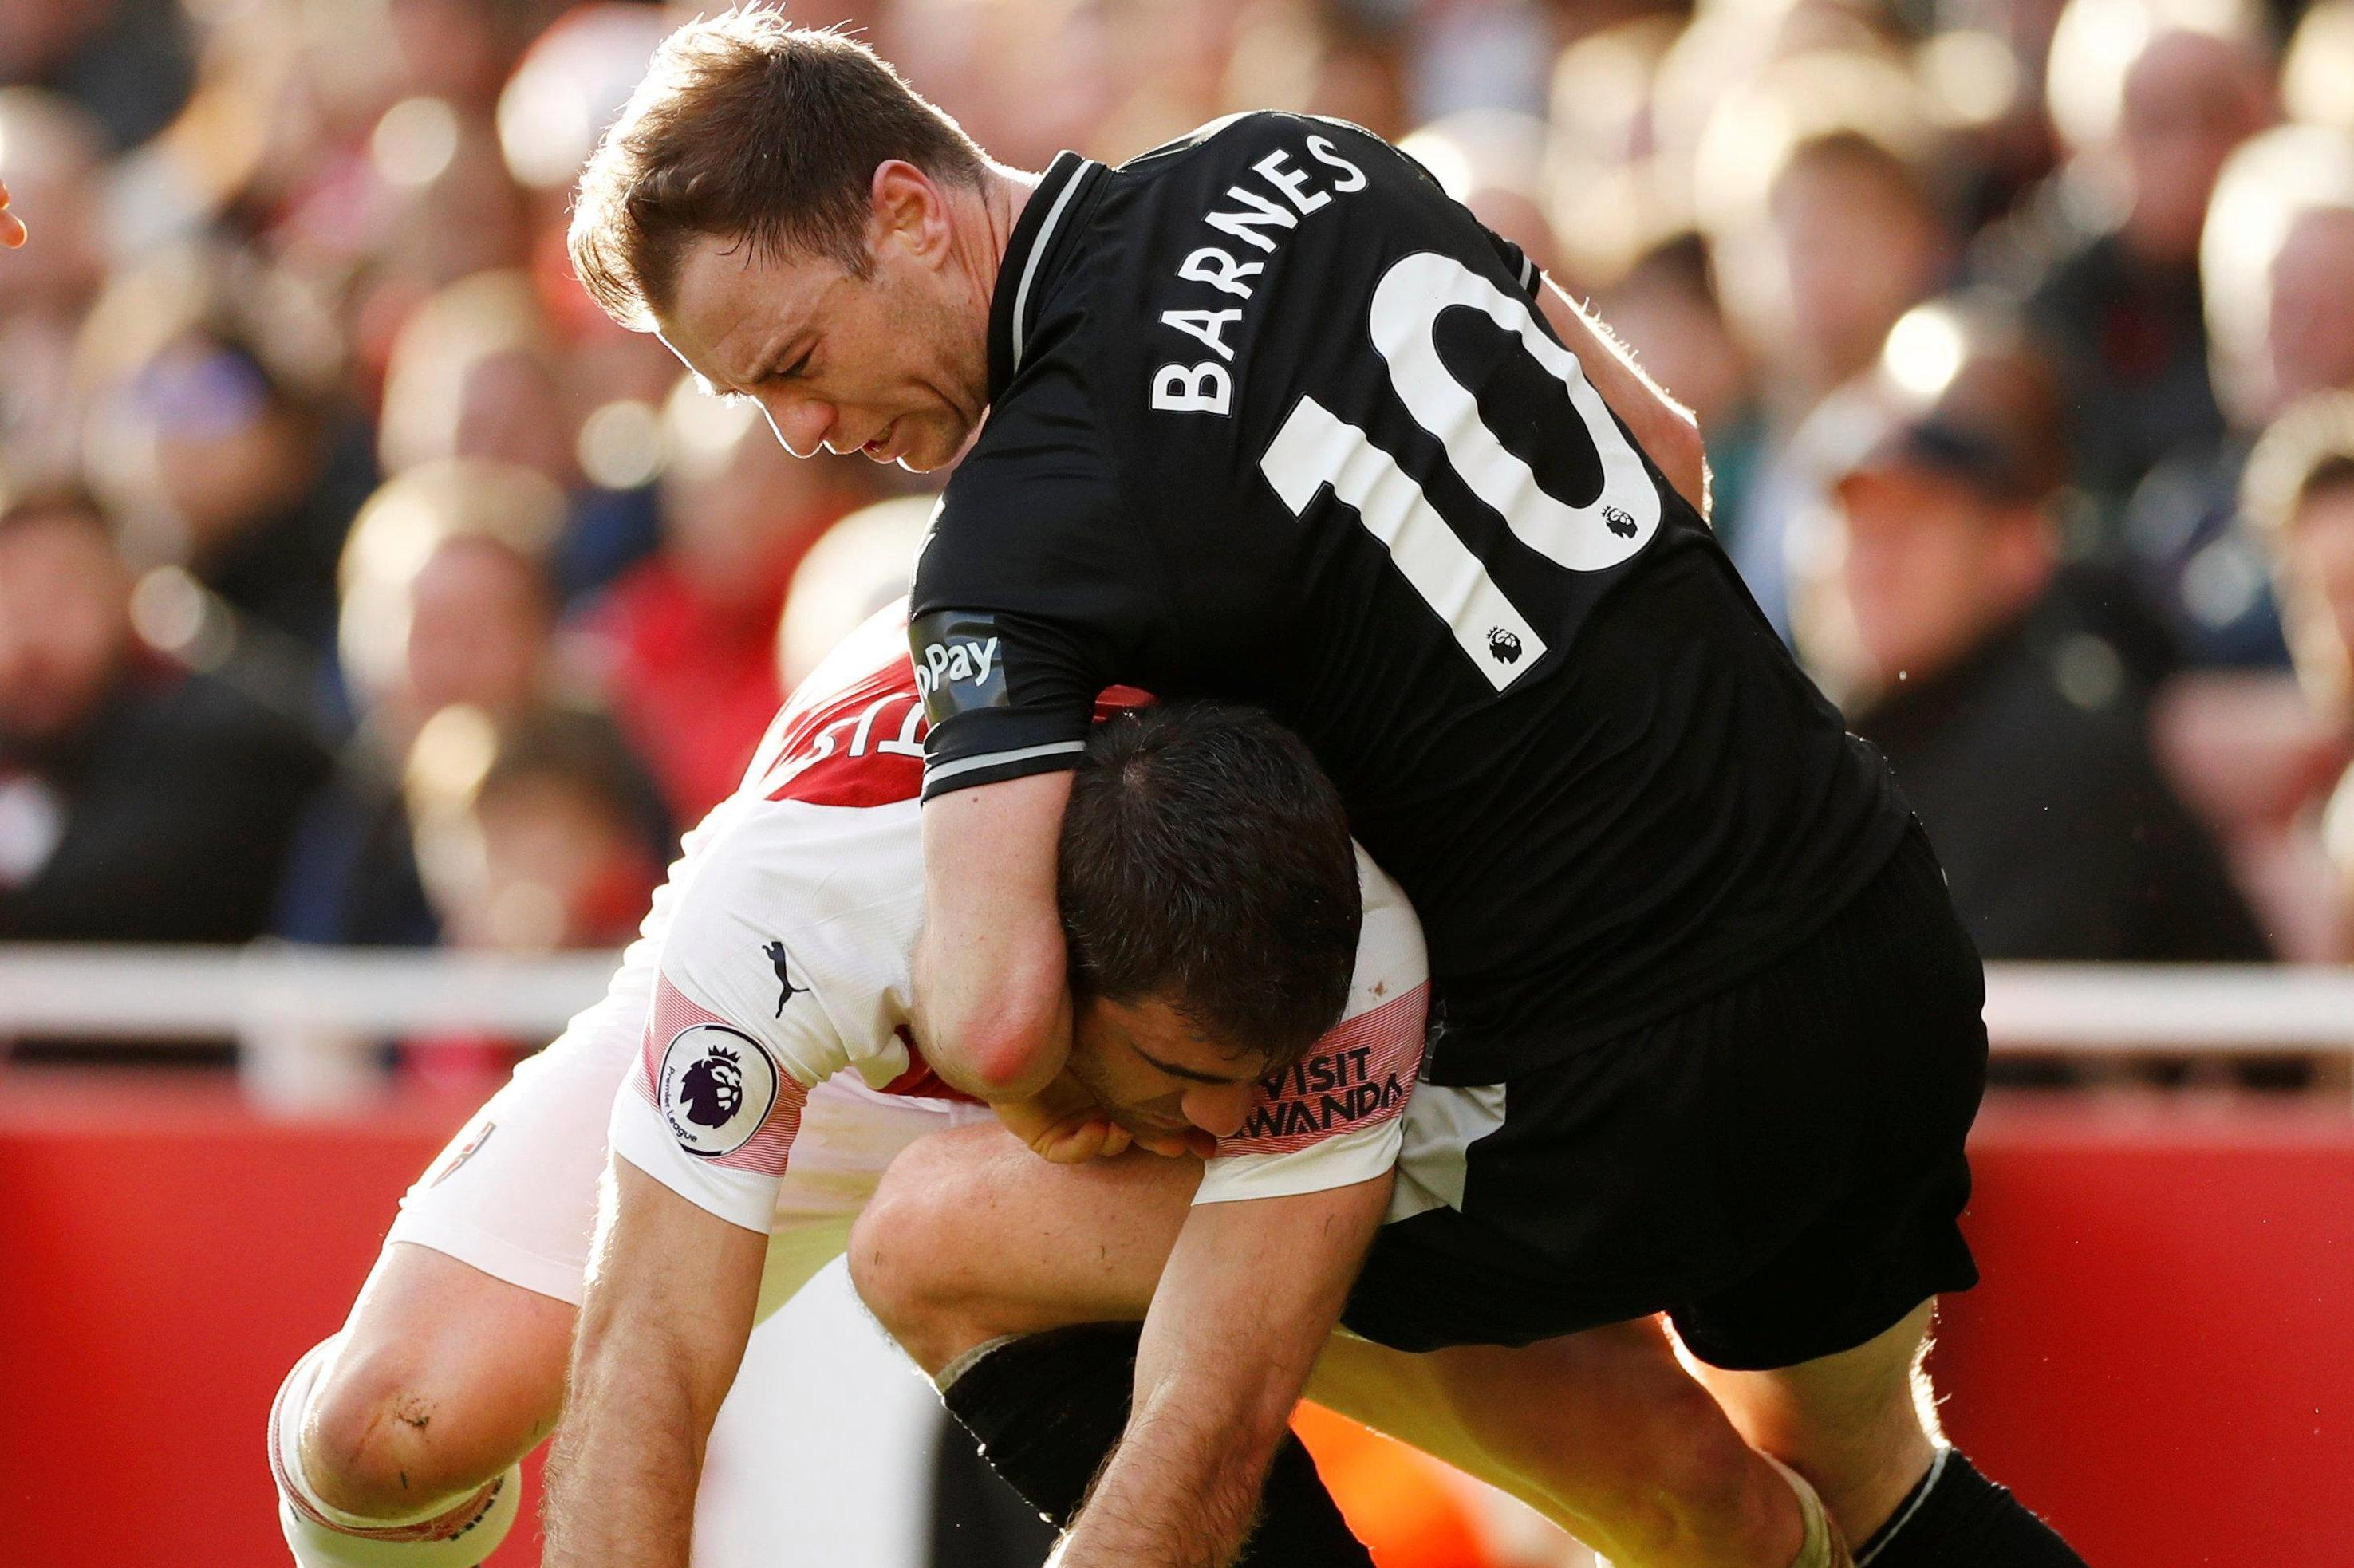 Sokratis and Ashley Barnes give their version of events after tussle in Arsenal win